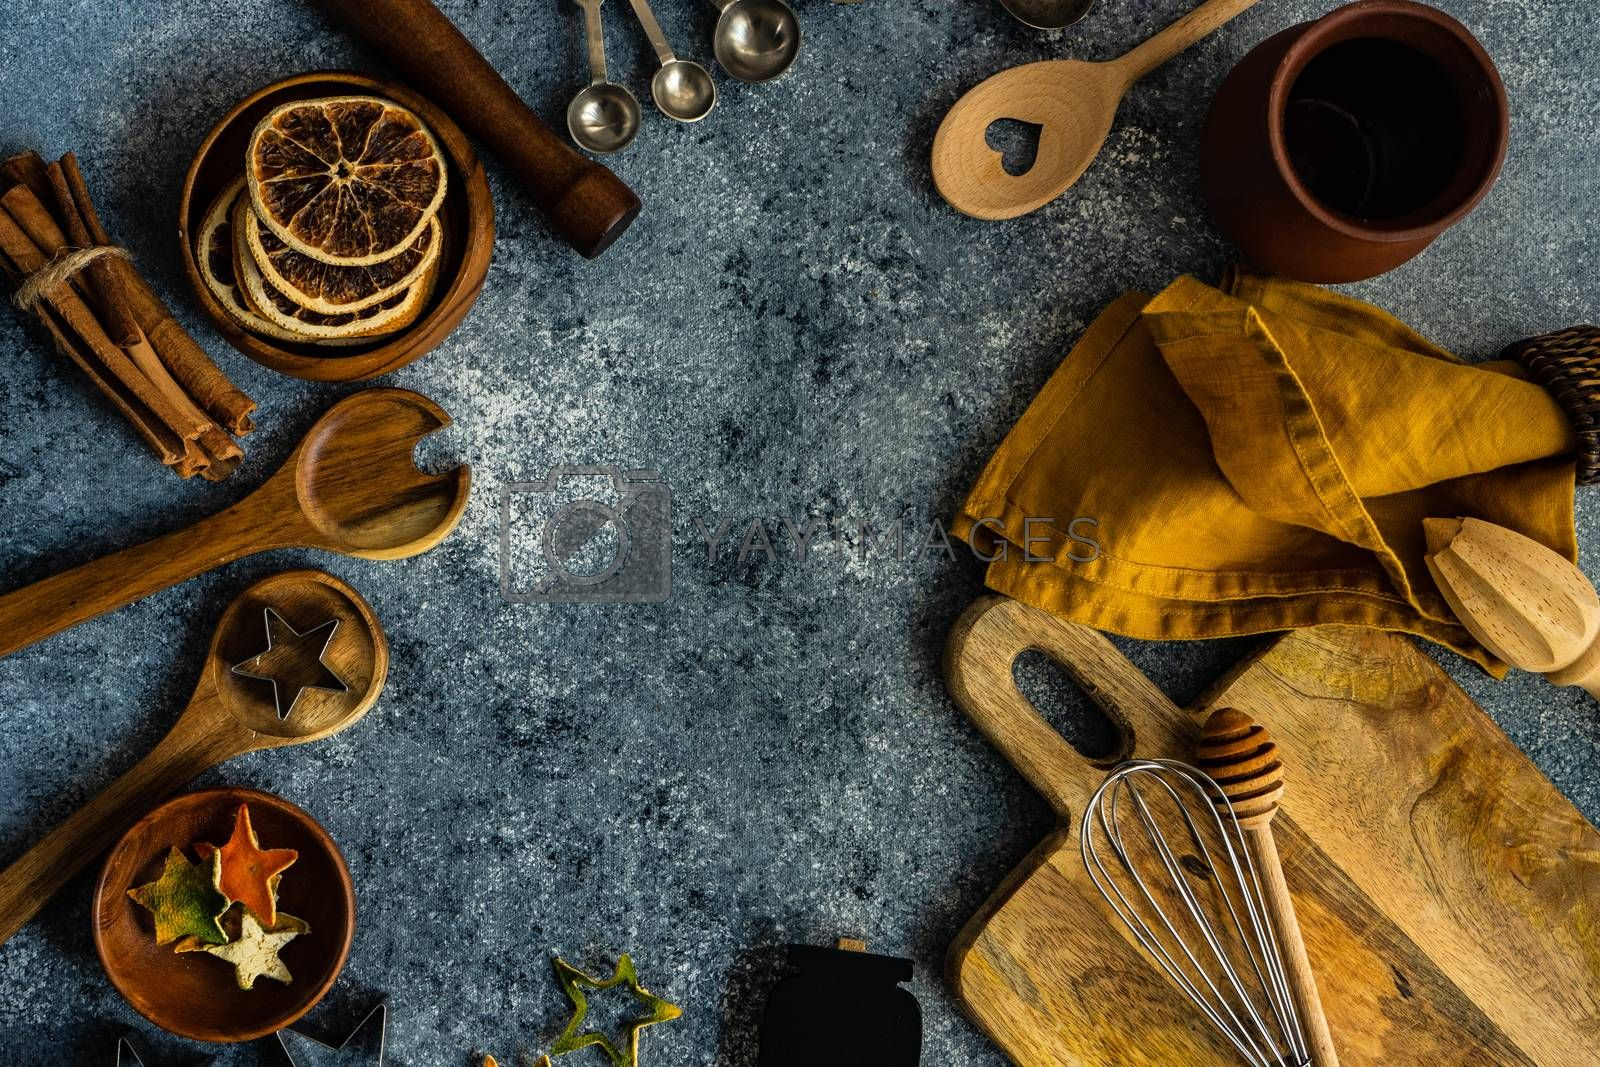 Cooking concept with kitchen tools on stone background with copy space